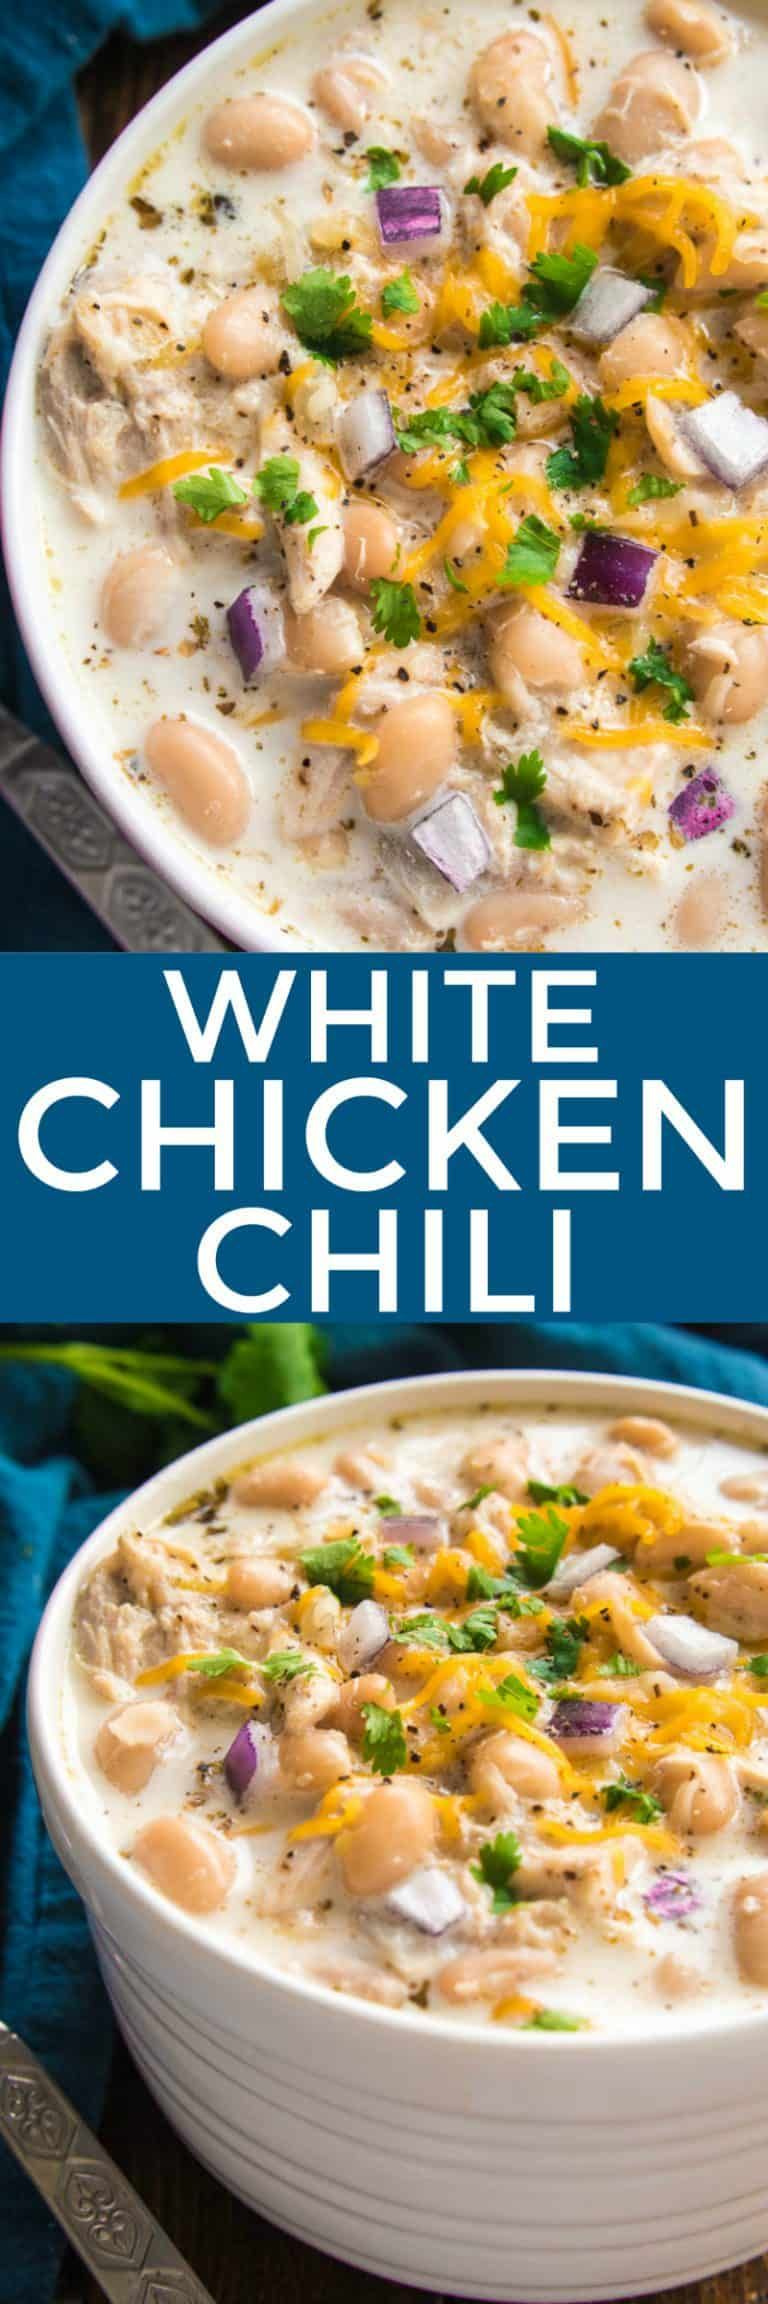 Creamy White Chicken Chili Recipe White Chili Chicken Recipe Creamy White Chicken Chili Recipe Creamy White Chicken Chili